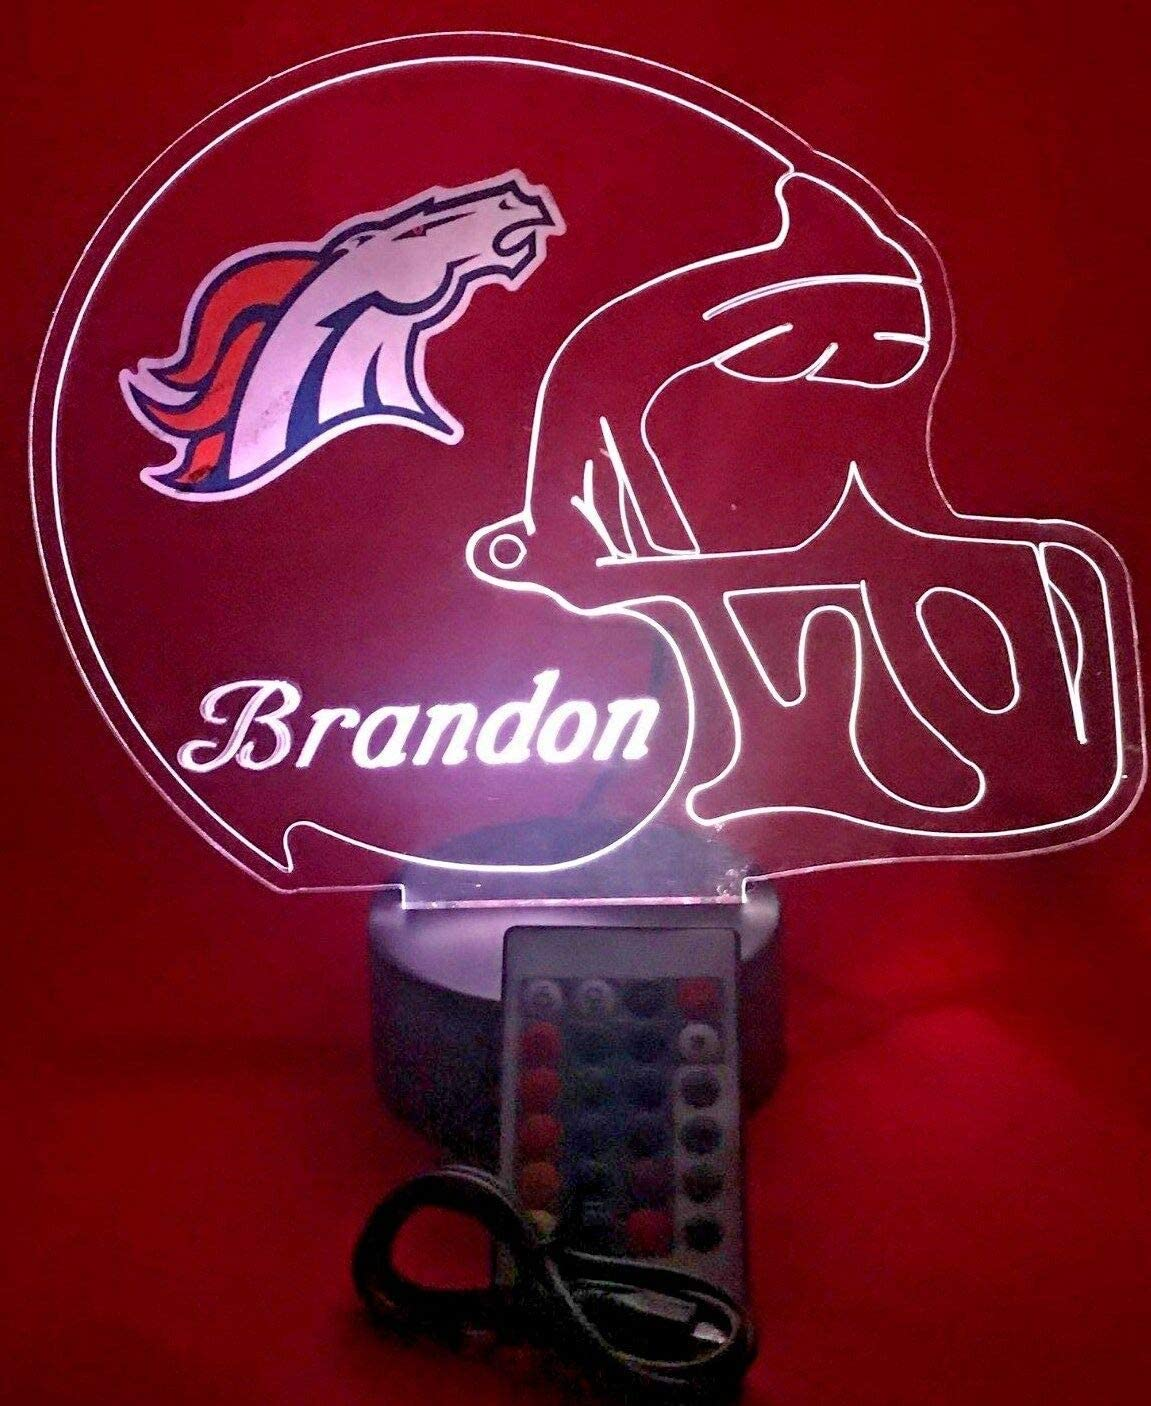 Denver Broncos NFL Light Up Lamp LED Personalized Free Football Light Up Light Lamp LED Table Lamp, Our Newest Feature - It's Wow, with Remote, 16 Color Options, Dimmer, Free Engraved, Great Gift